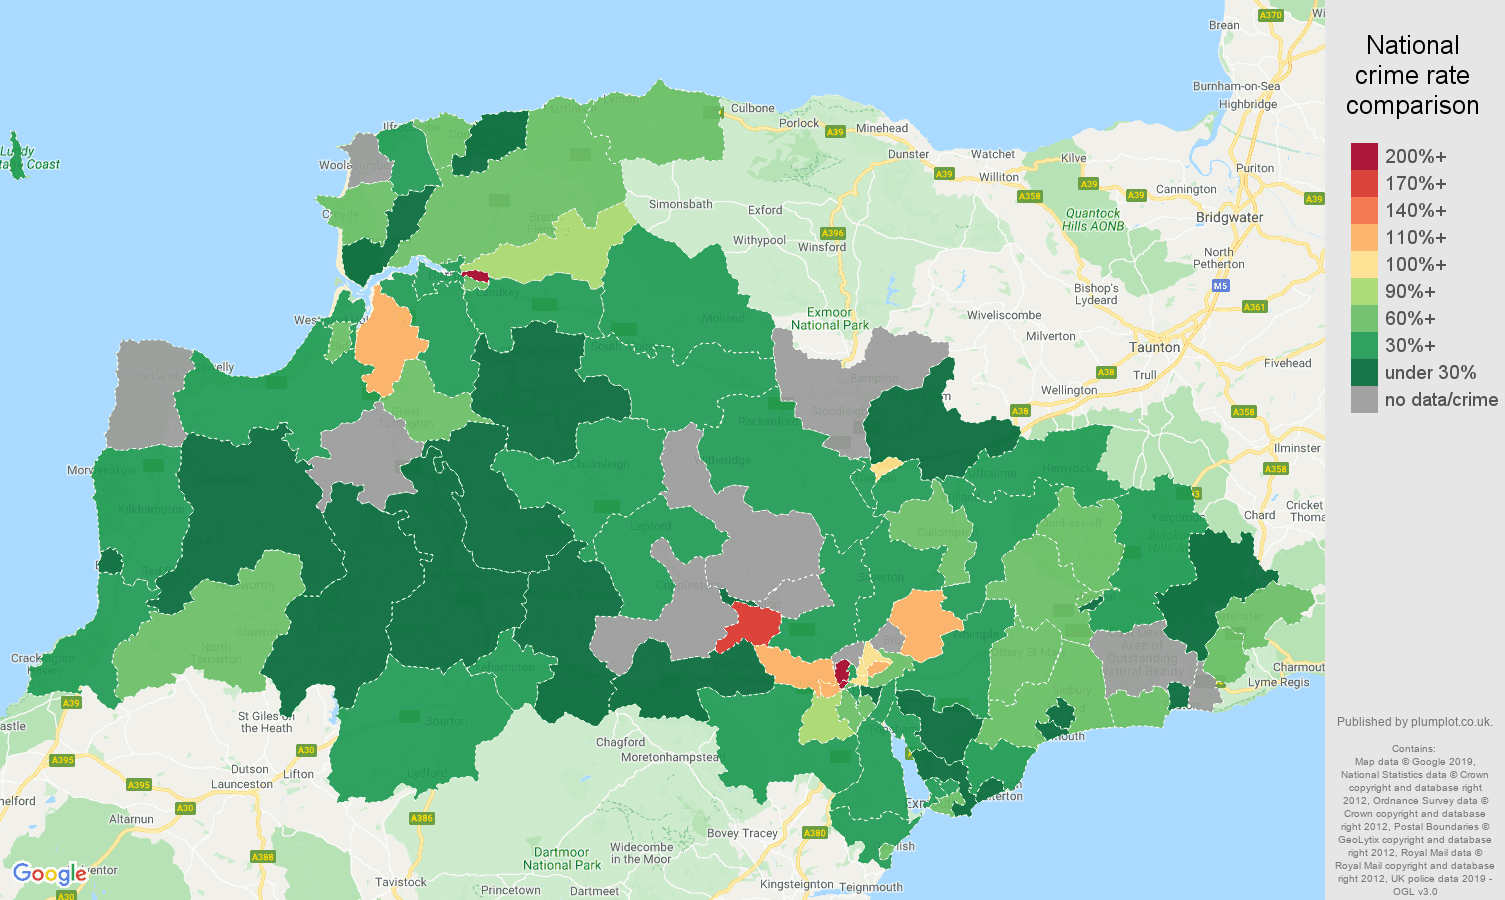 Exeter other crime rate comparison map